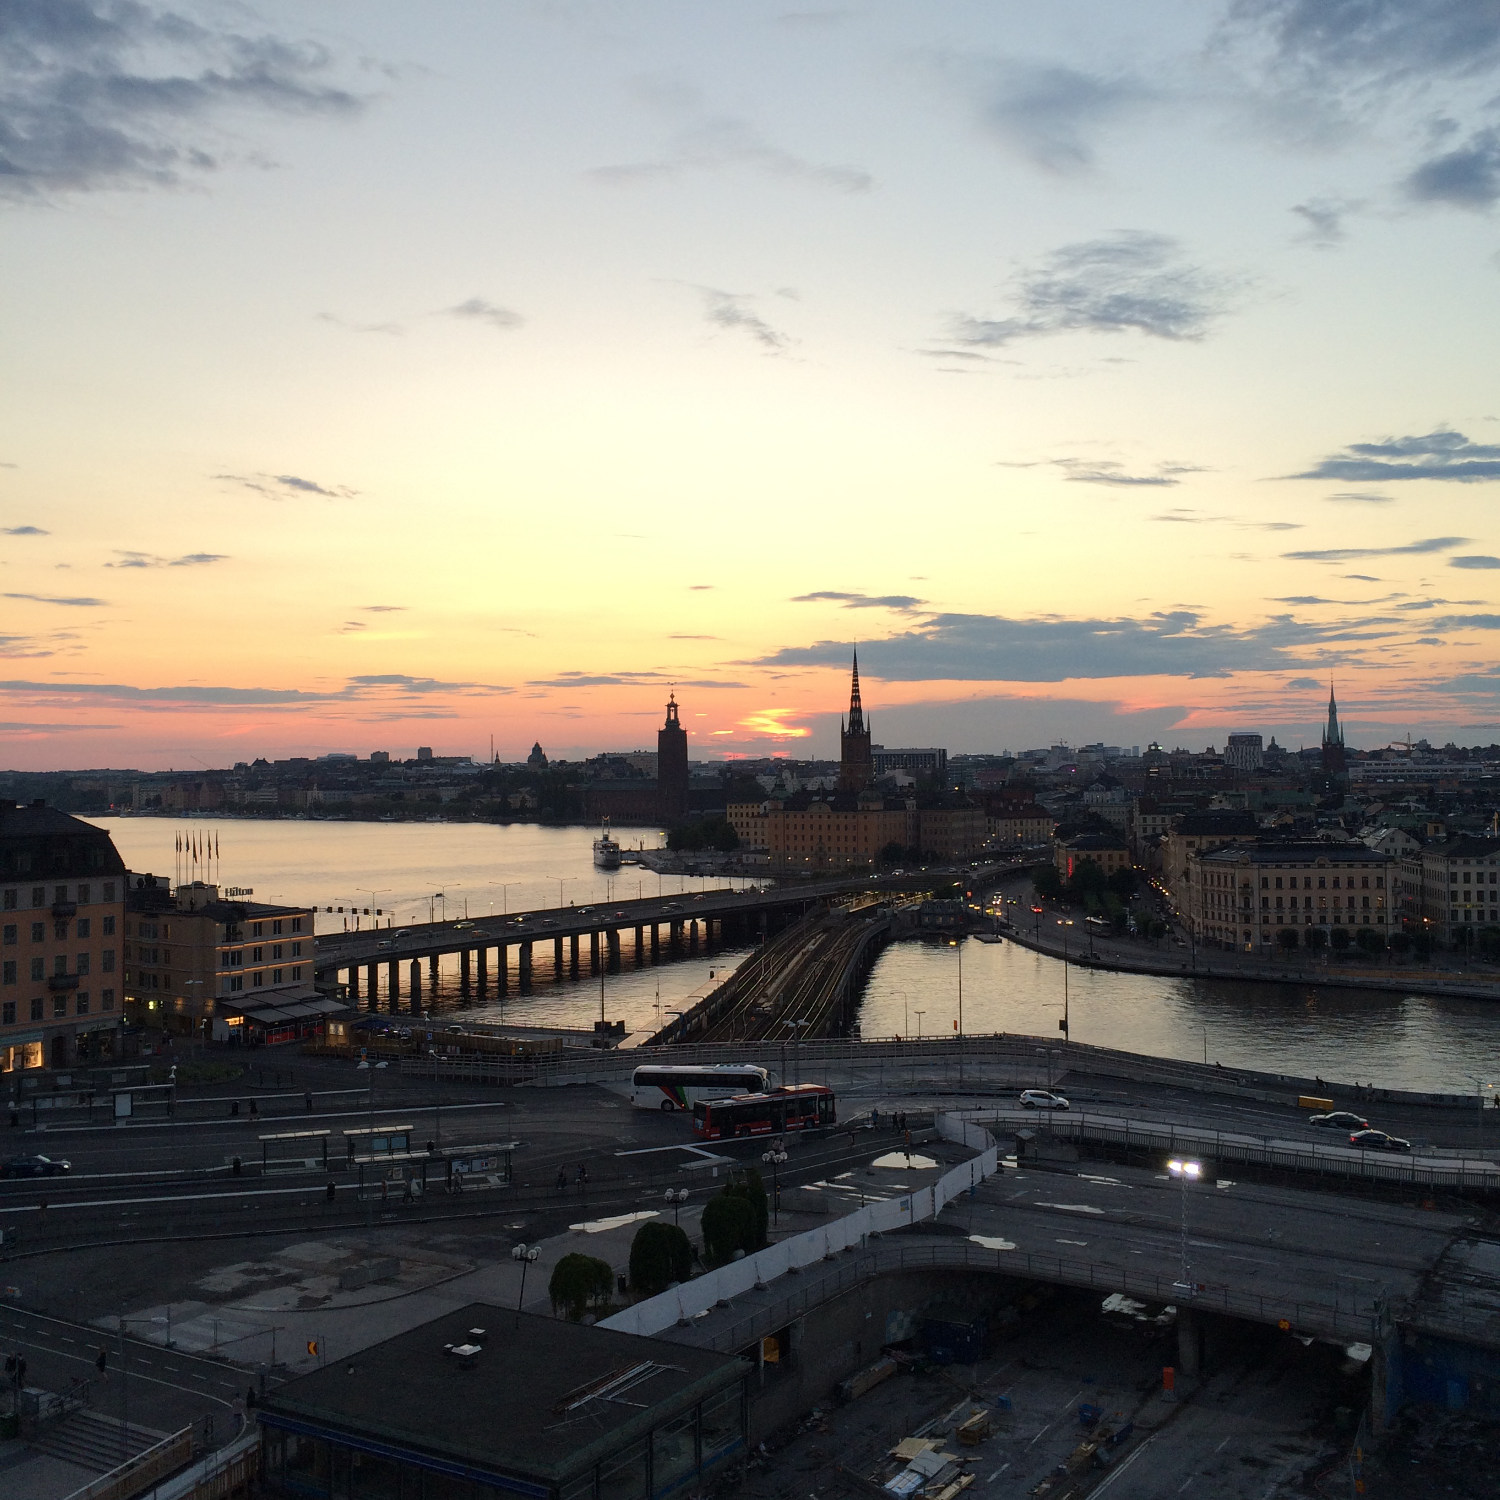 sunset skyline in stockholm, sweden